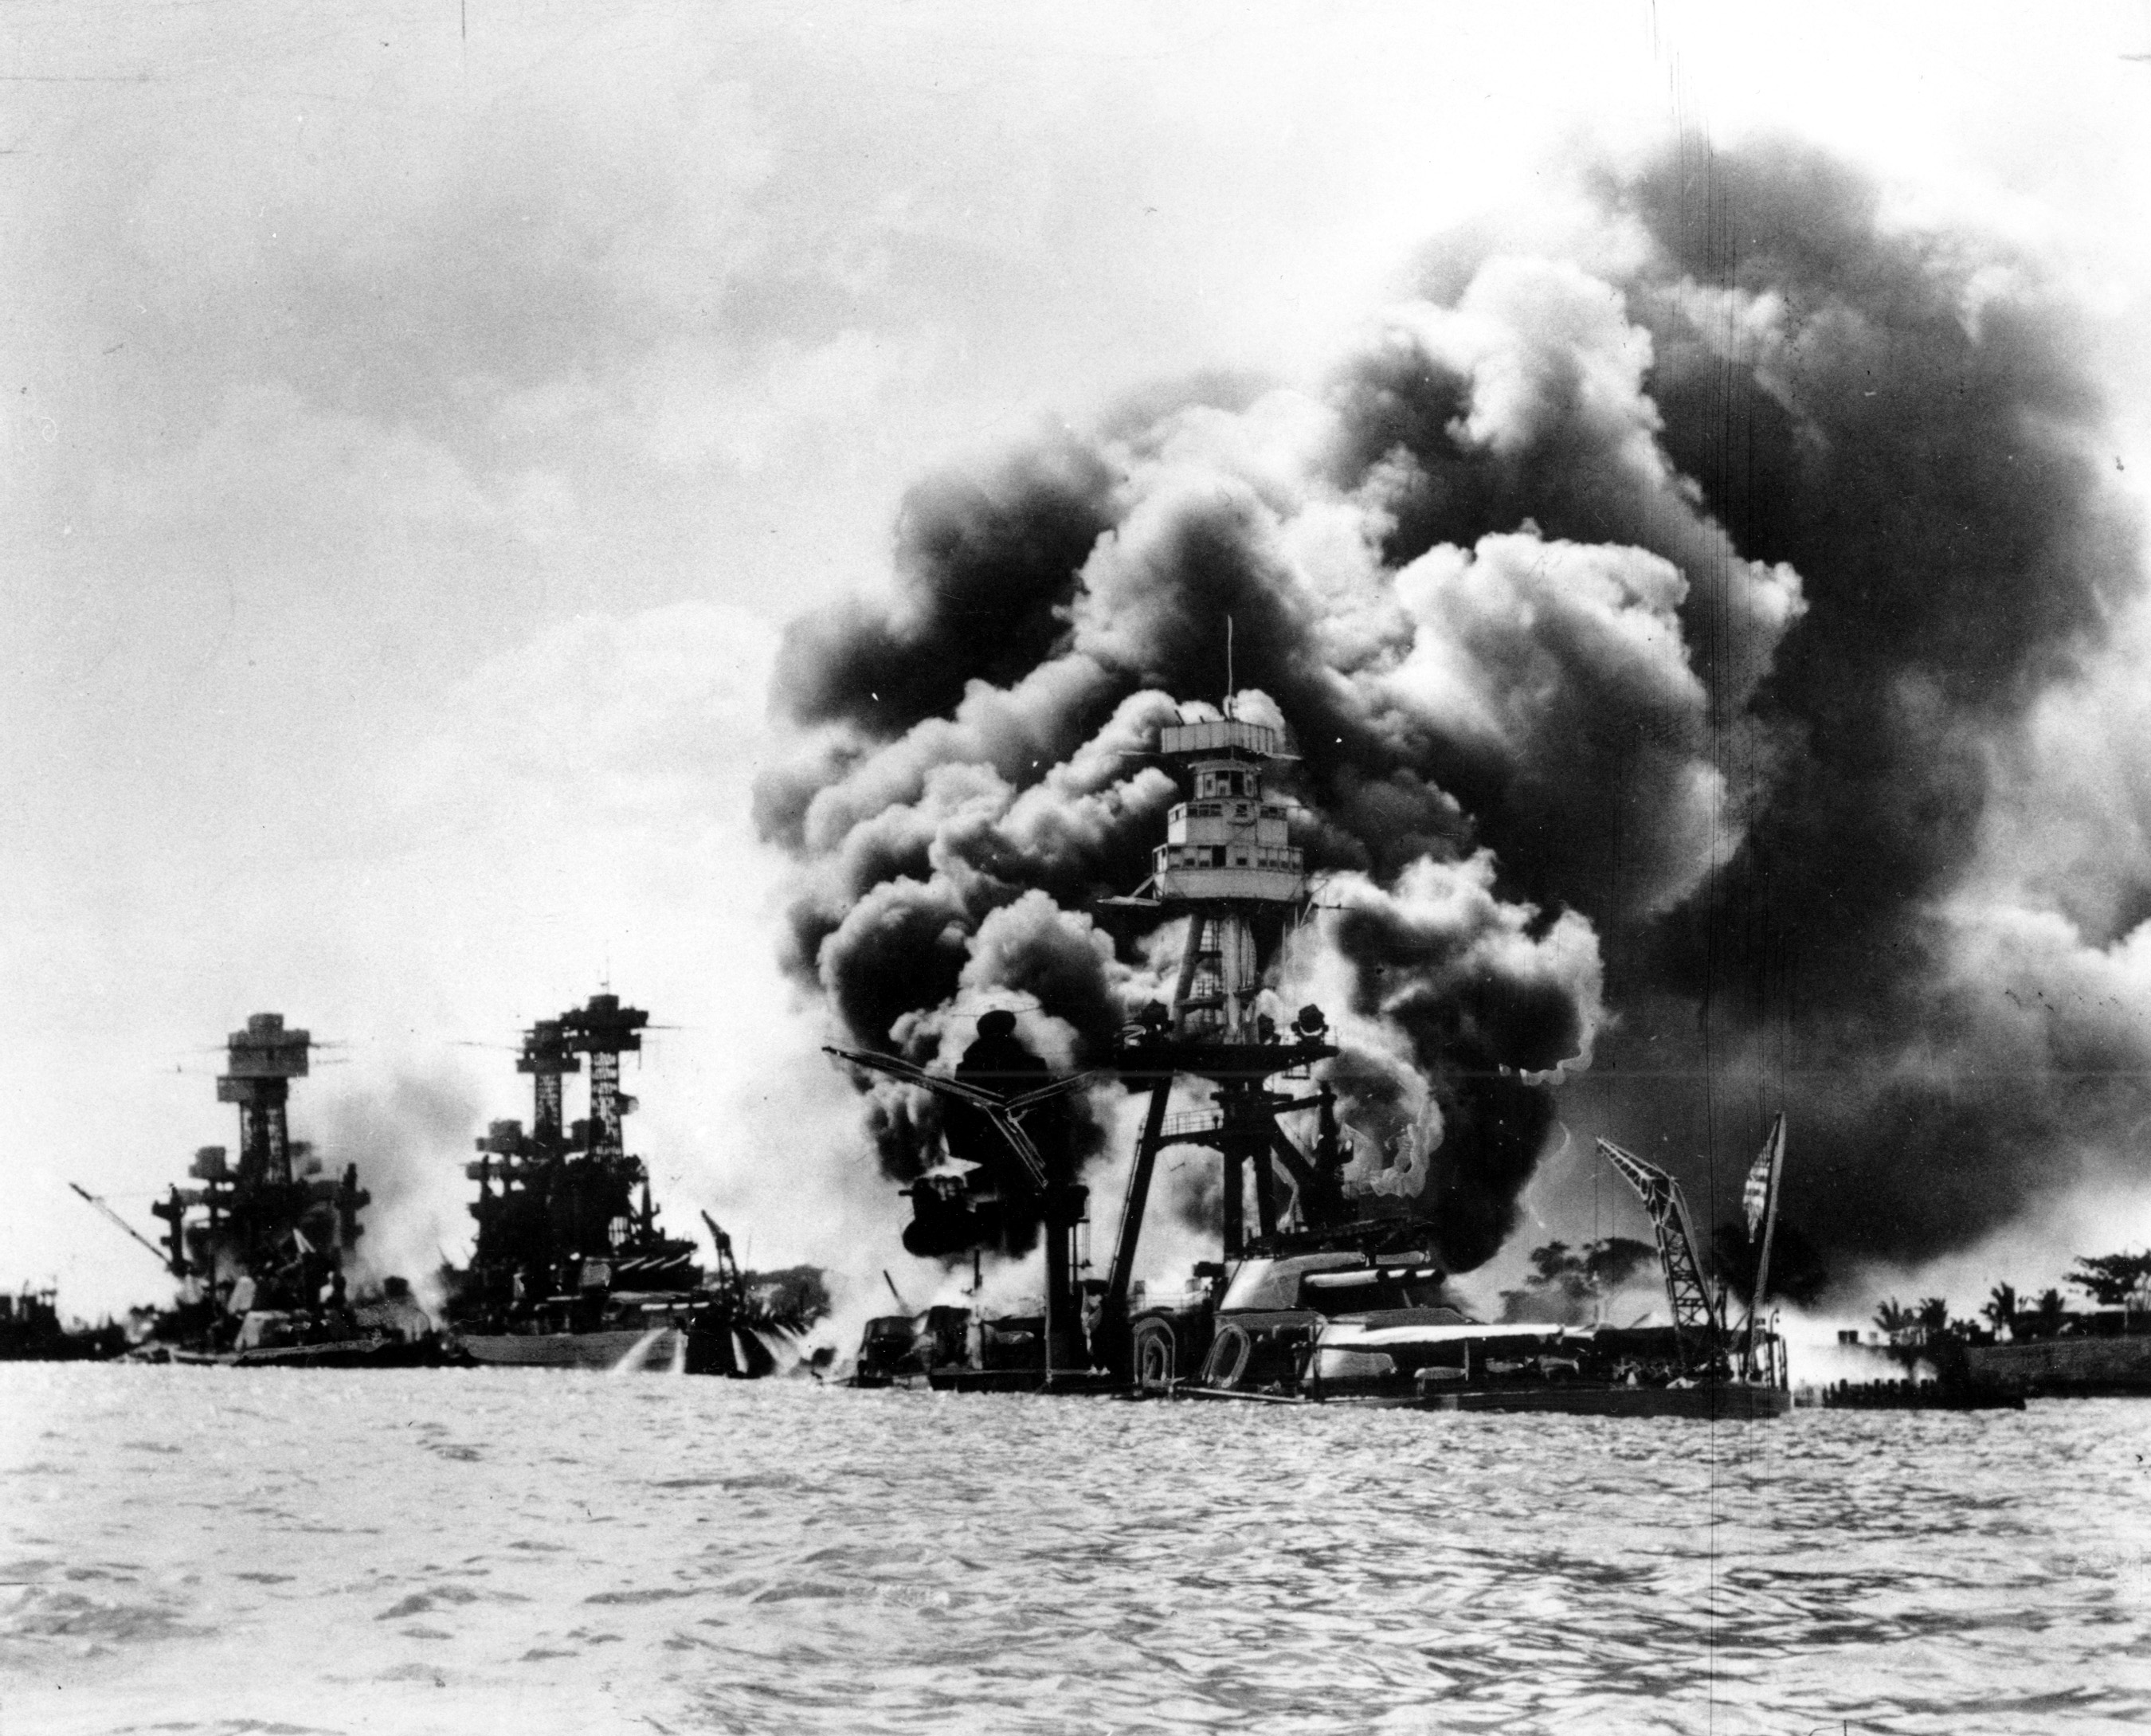 Three U.S. battleships are hit from the air during the Japanese attack on Pearl Harbor on Dec. 7, 1941. Japan's bombing of U.S. military bases at Pearl Harbor brings the U.S. into World War II. From left are: USS West Virginia, severely damaged; USS Tennessee, damaged; and USS Arizona, sunk. (AP Photo)